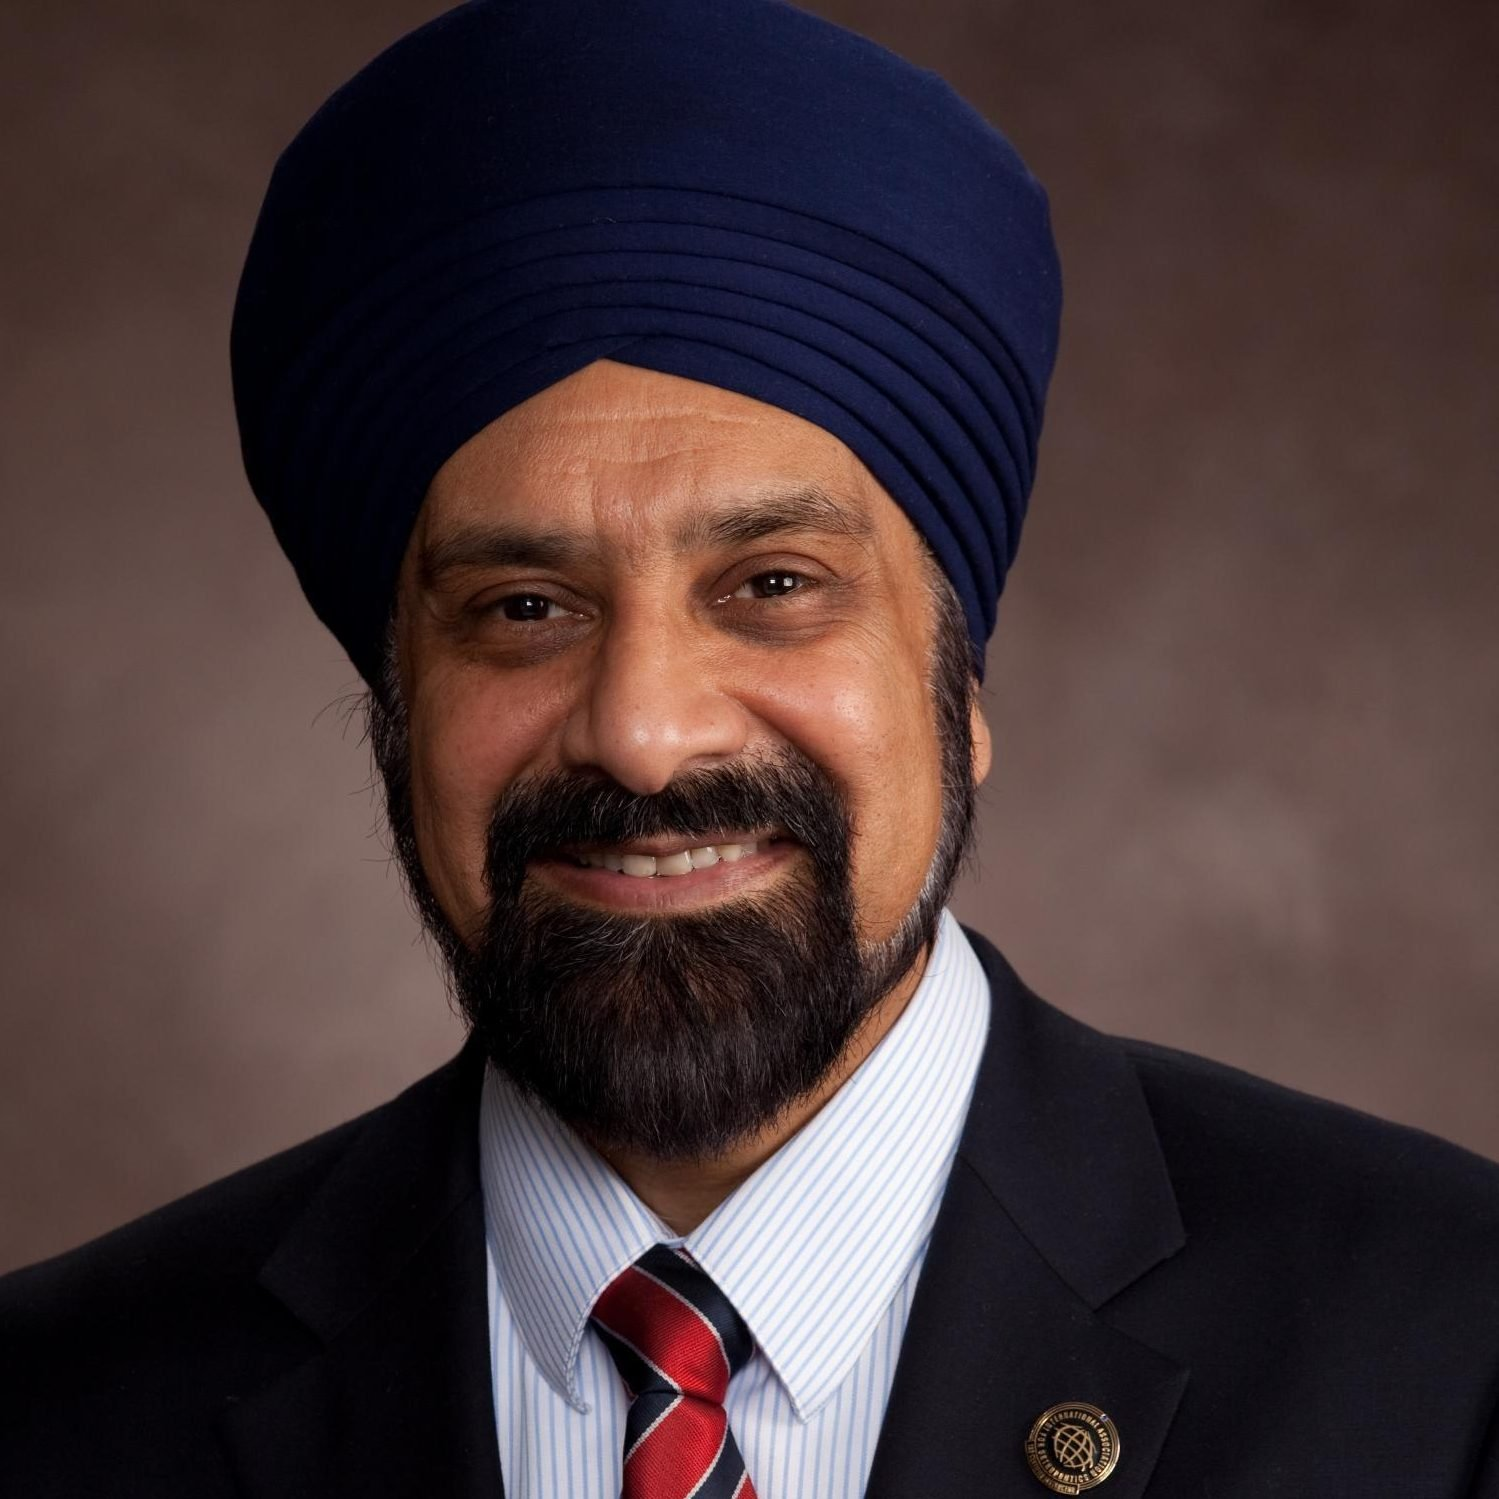 Dave Singh DMD PhD DDSc - 2019 Healthy Living Award - Invisible Disabilities Association